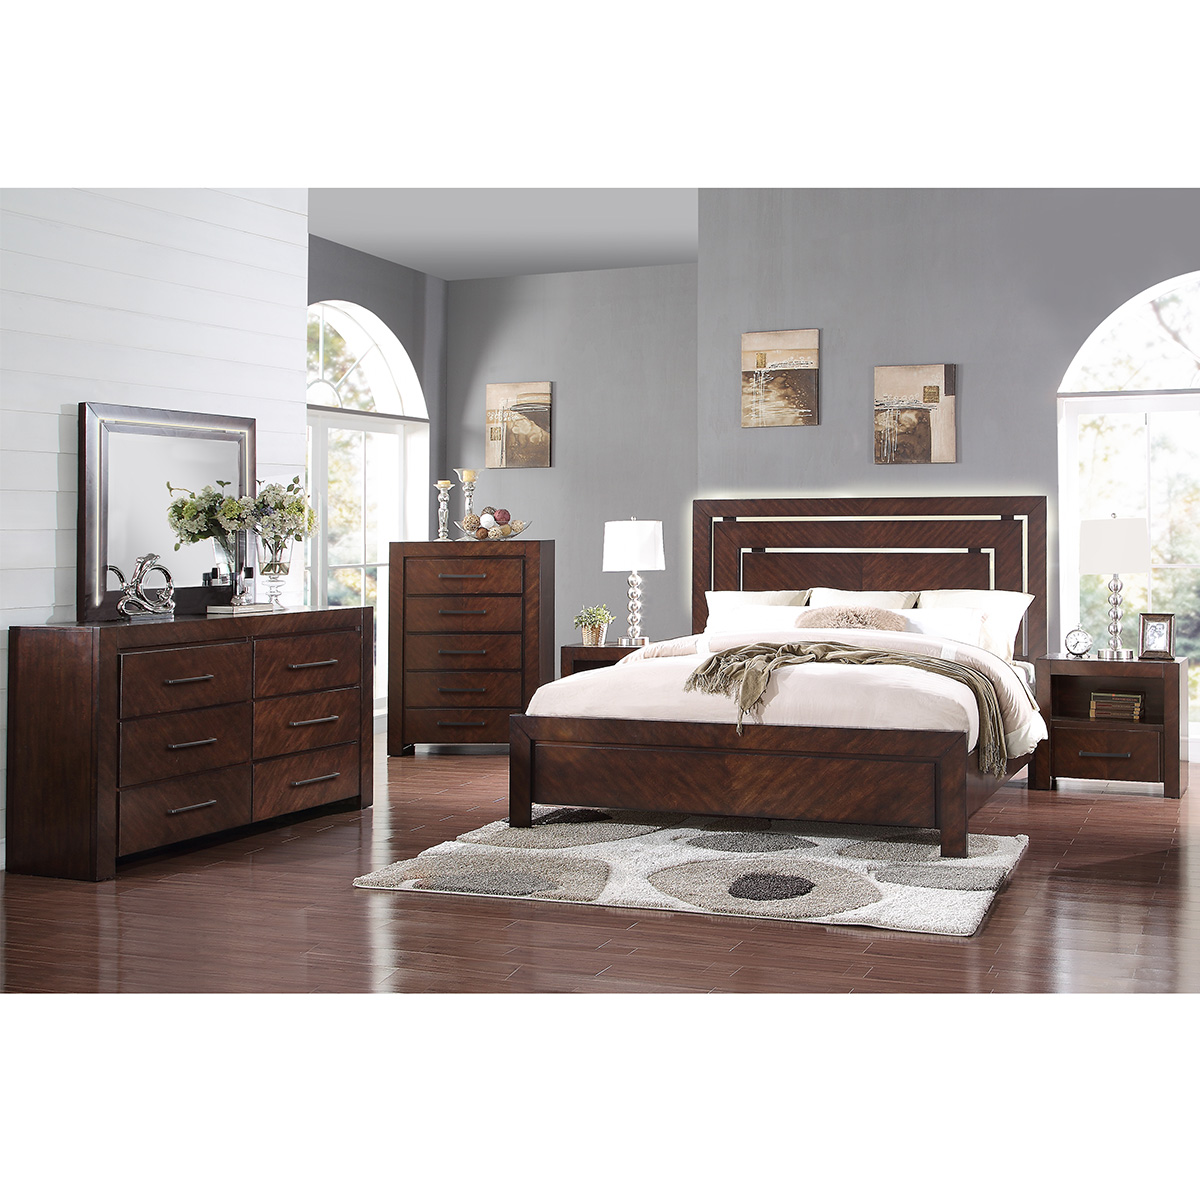 Furniture King Bedroom Set Walnut With Jcpenney King Bedroom Sets 2